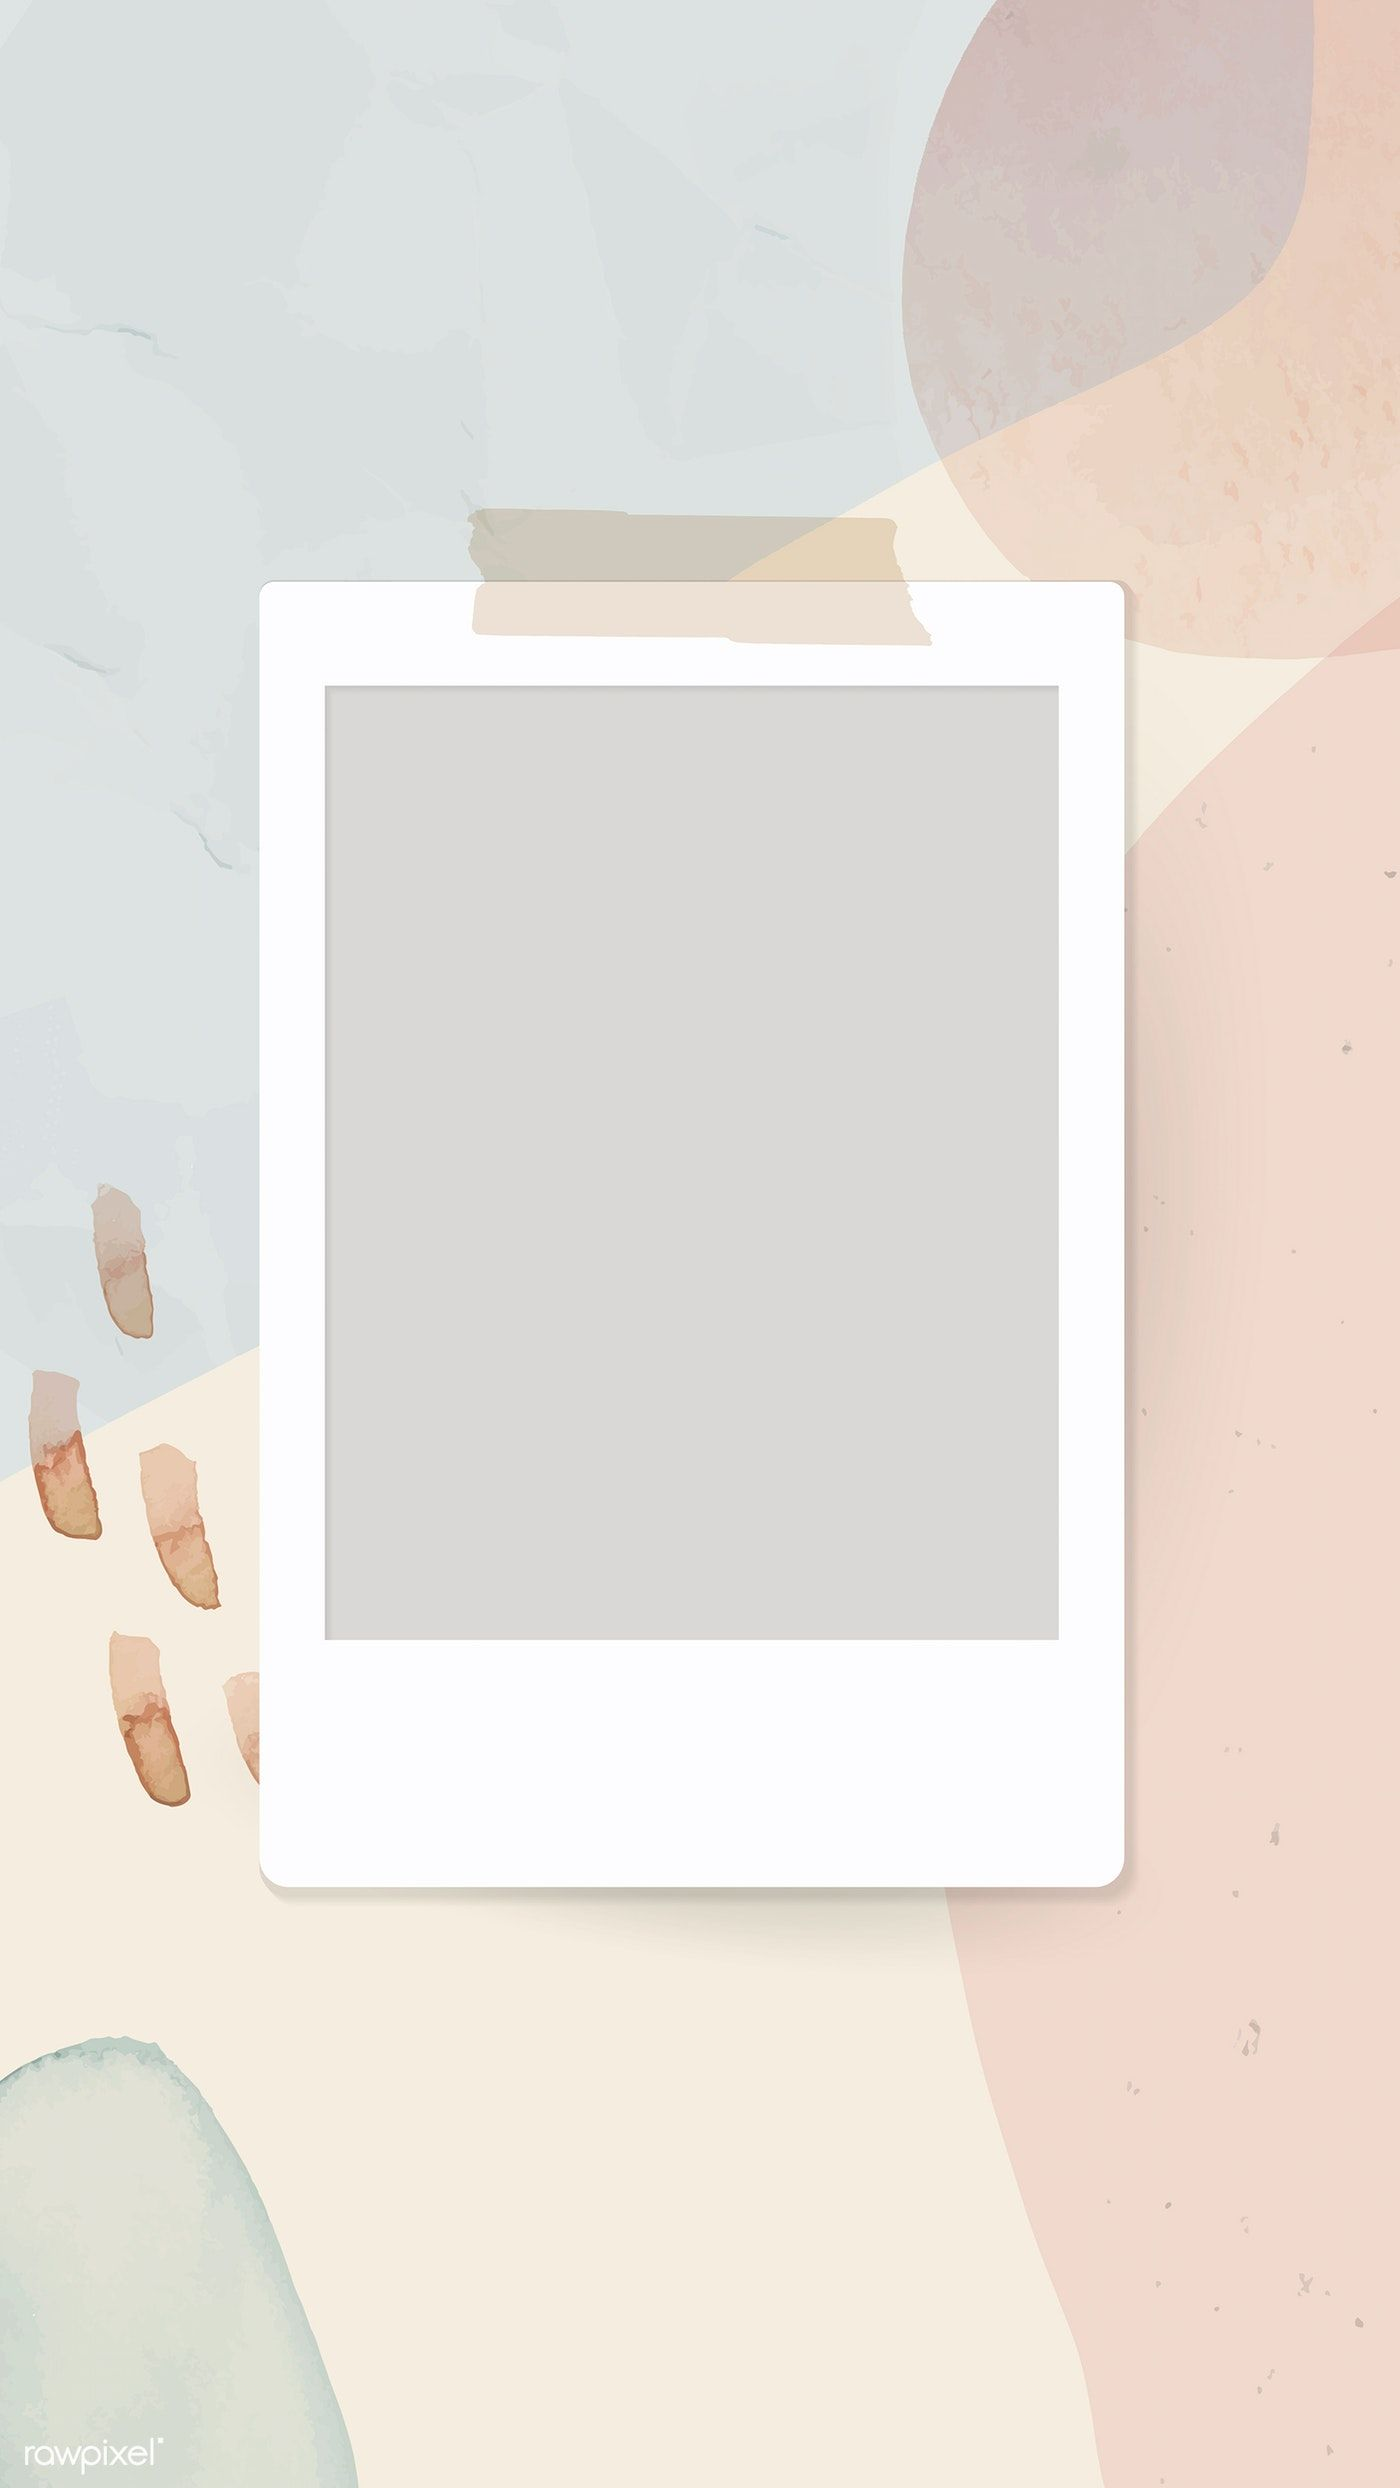 Download Premium Vector Of Blank Instant Photo Frame On Neutral